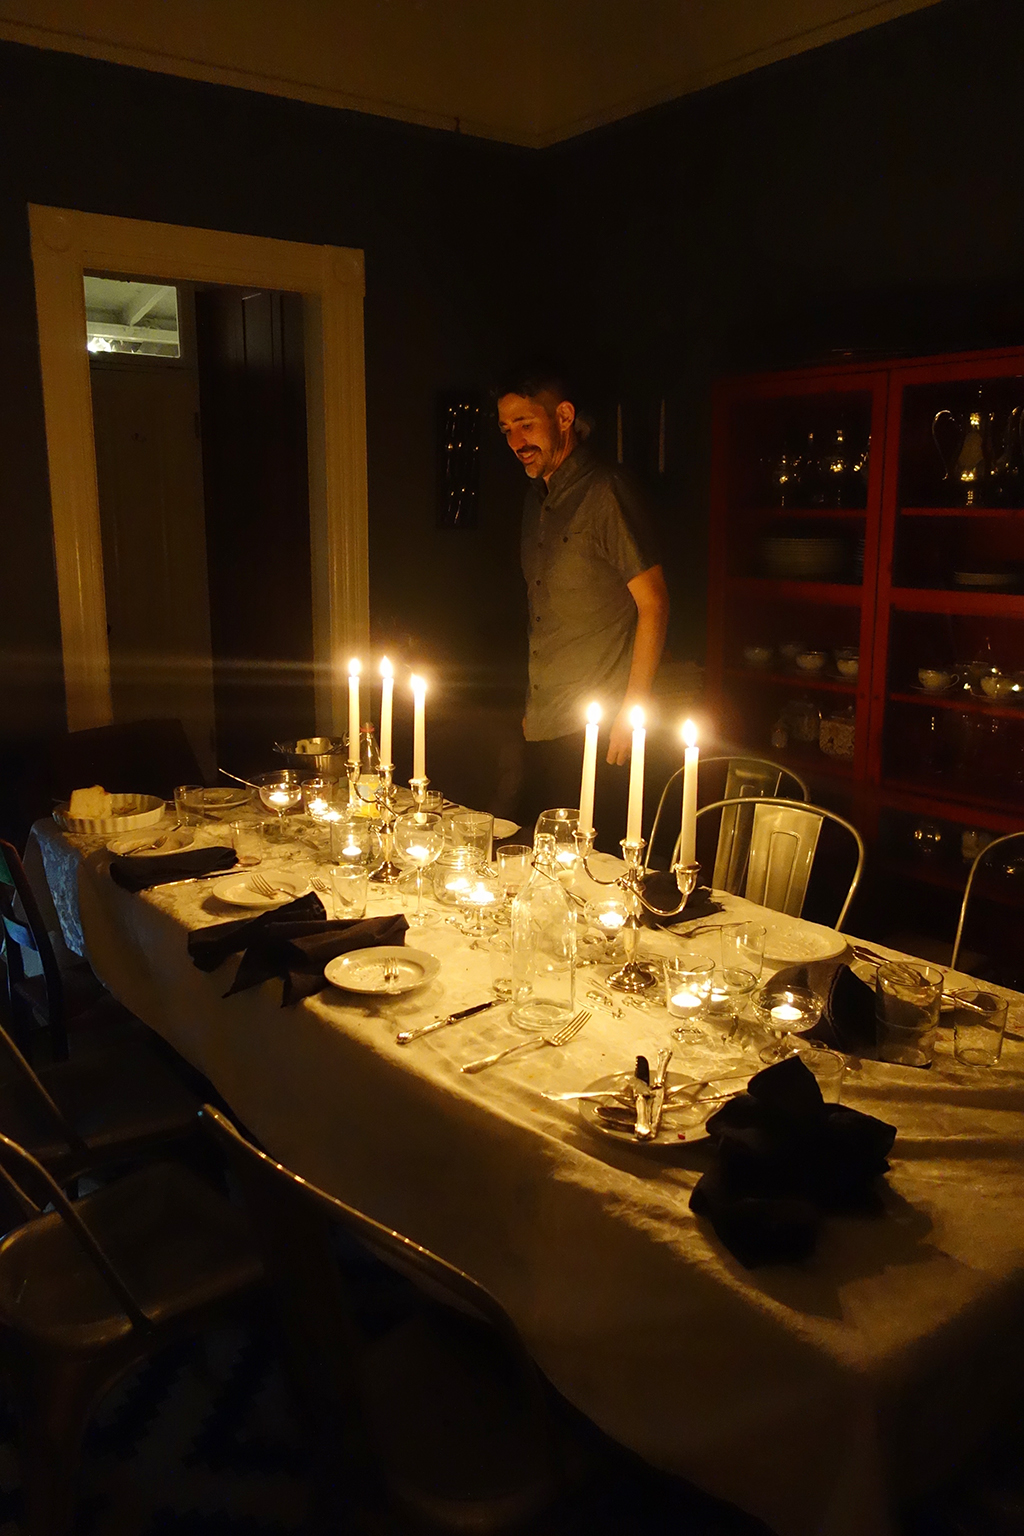 Candlelight dinner party